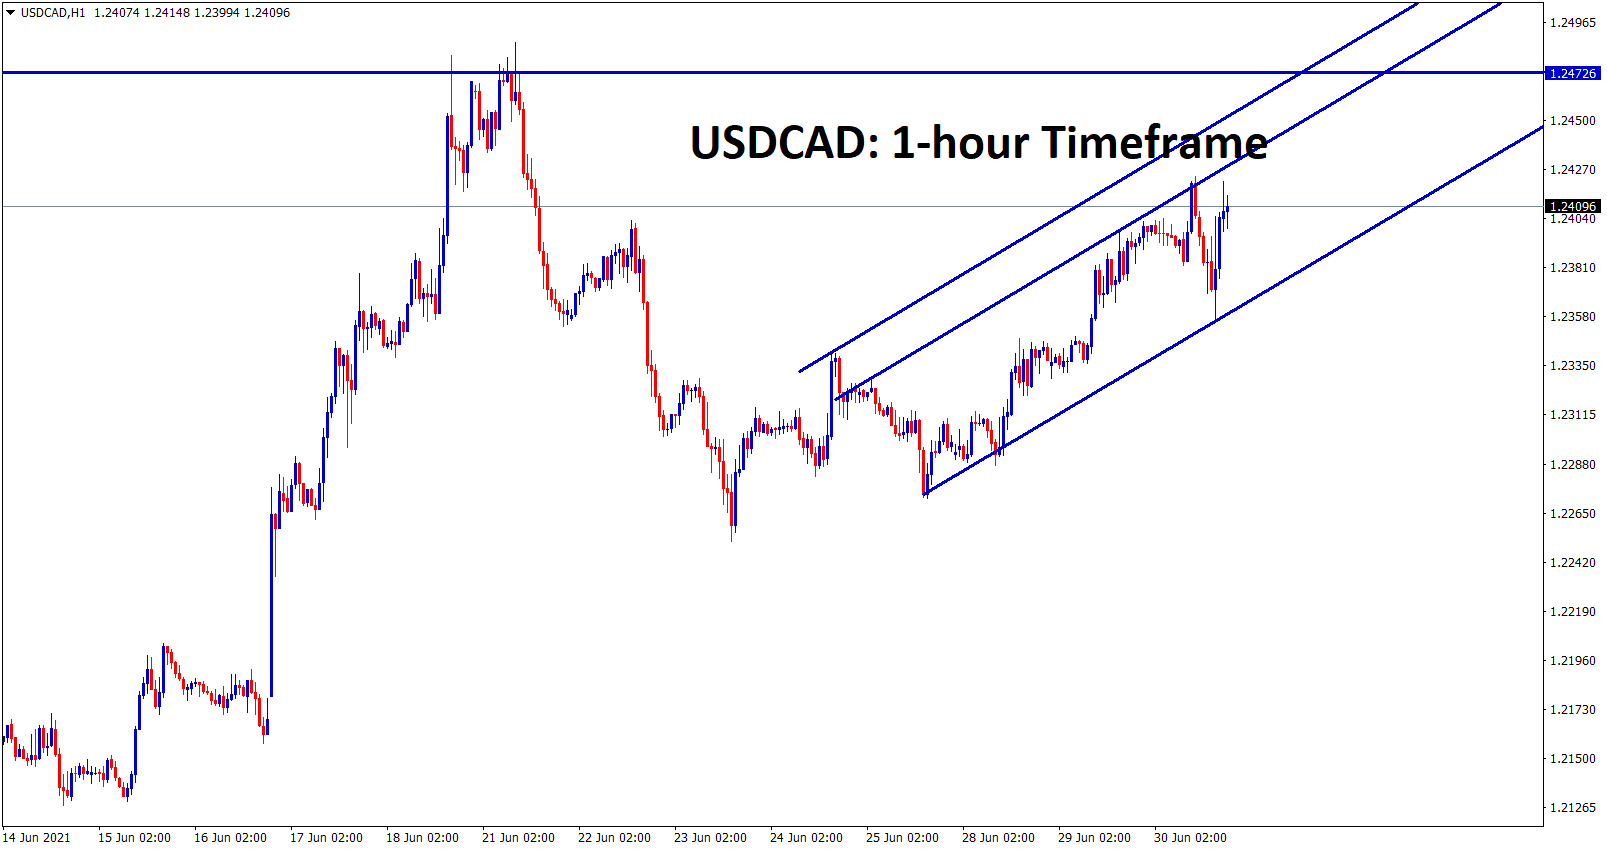 USDCAD is moving in an uptrend channel heading to the resistance